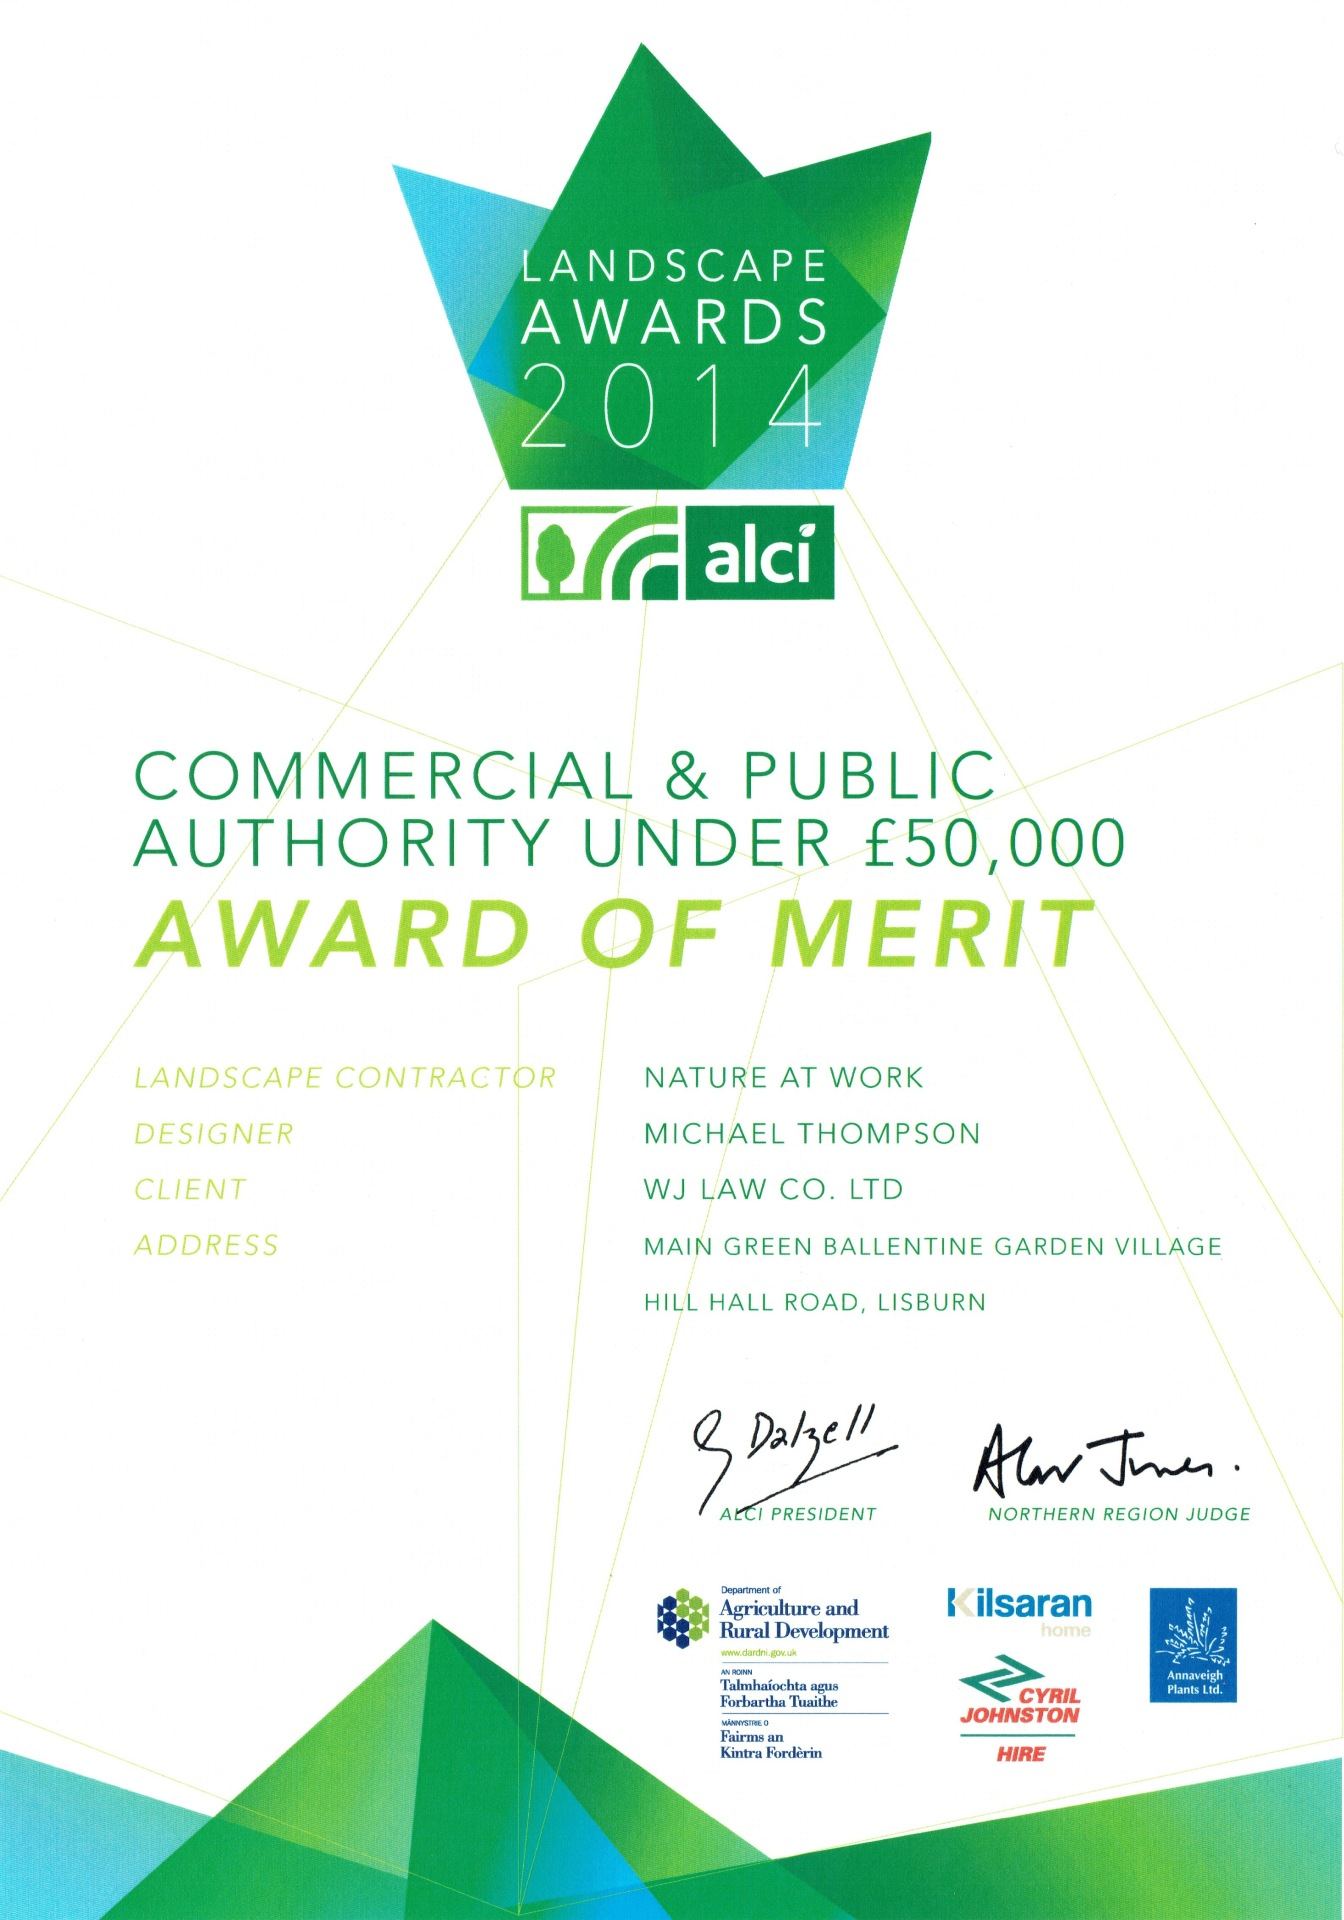 ALCI 2014 Awards Commercial & Public Authority Under £50,000